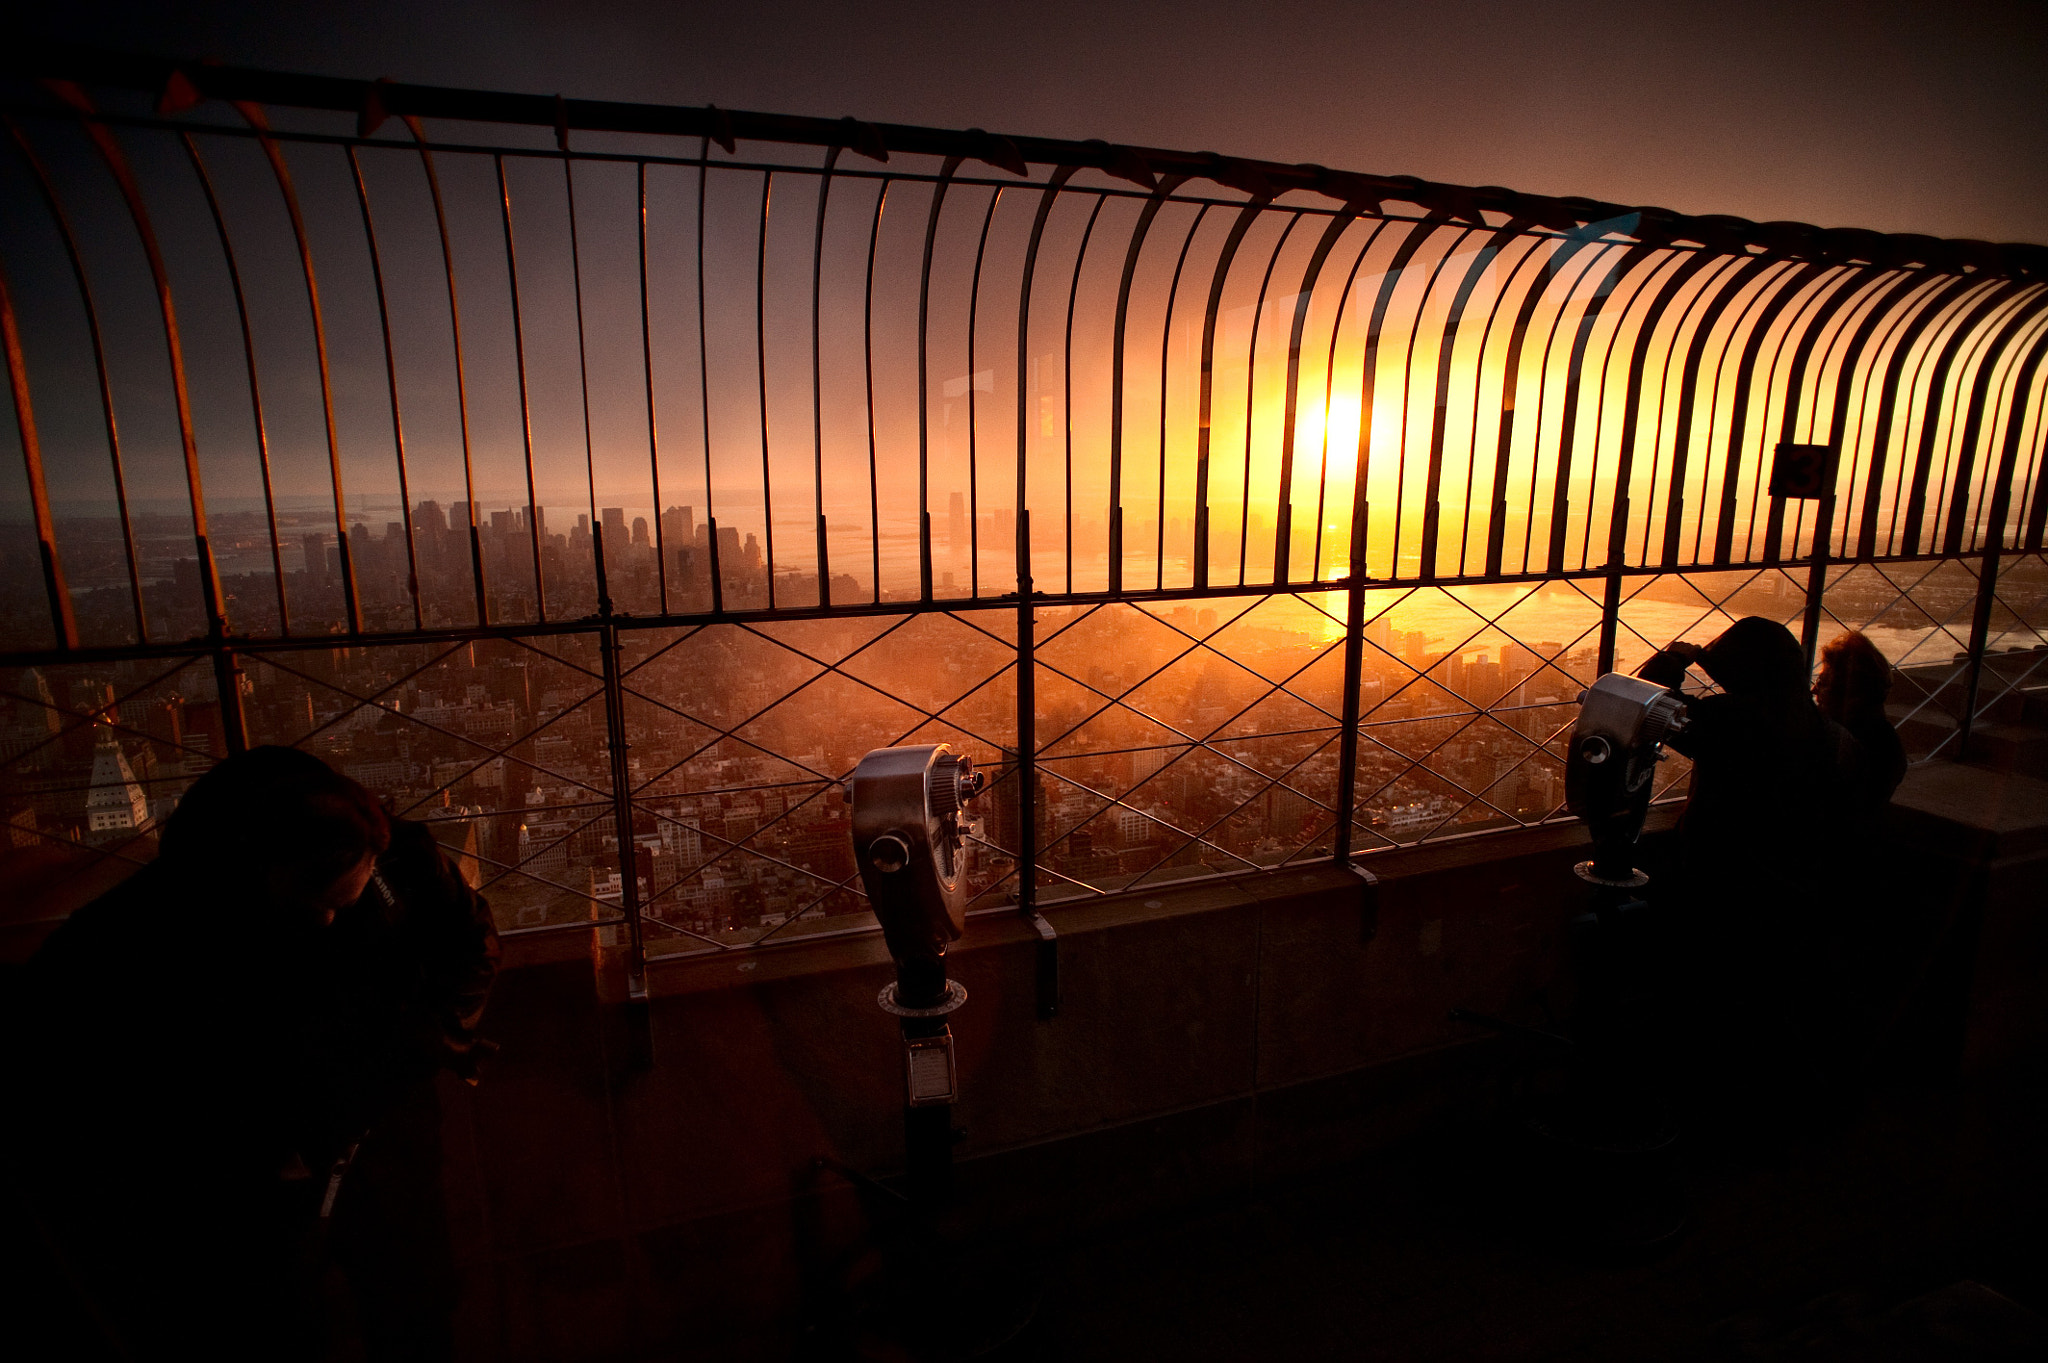 Photograph The Empire State Building at sunset by NabeelsCamera  on 500px